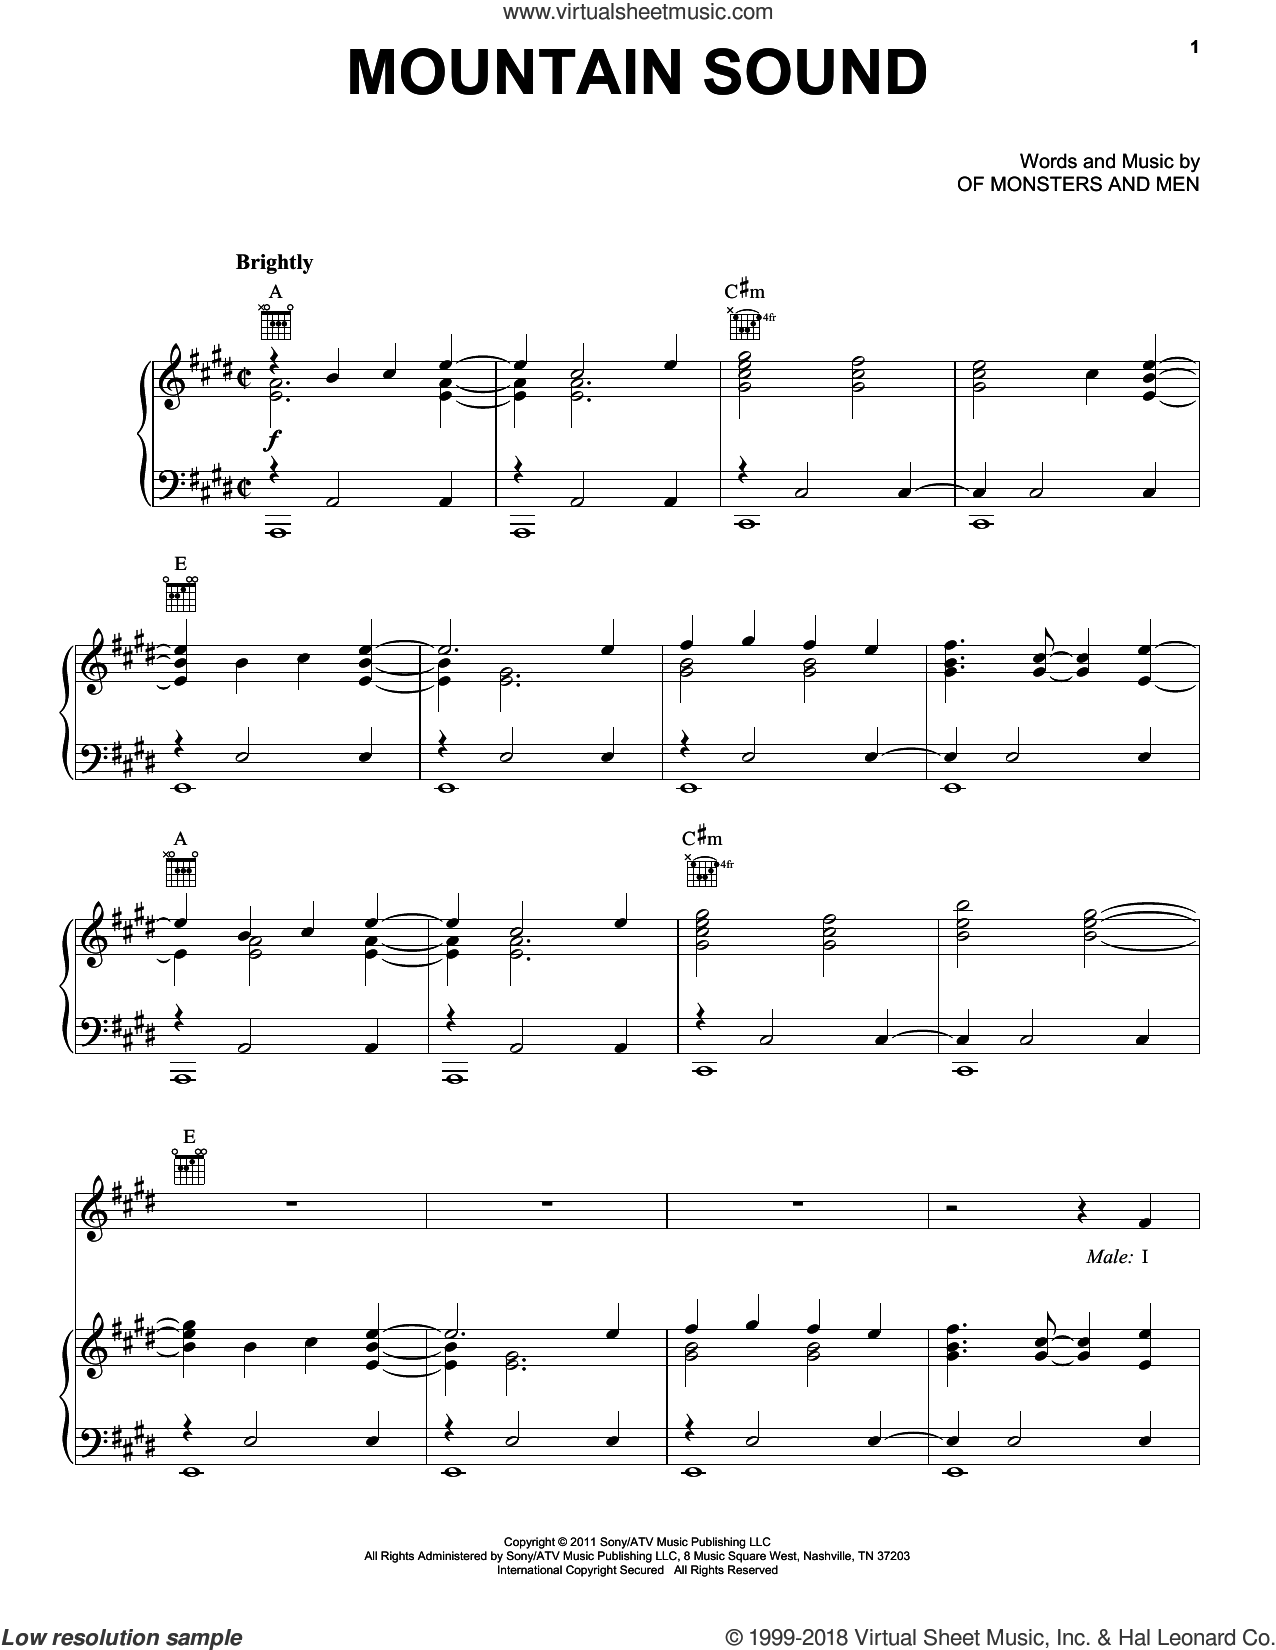 Mountain Sound sheet music for voice, piano or guitar by Of Monsters And Men